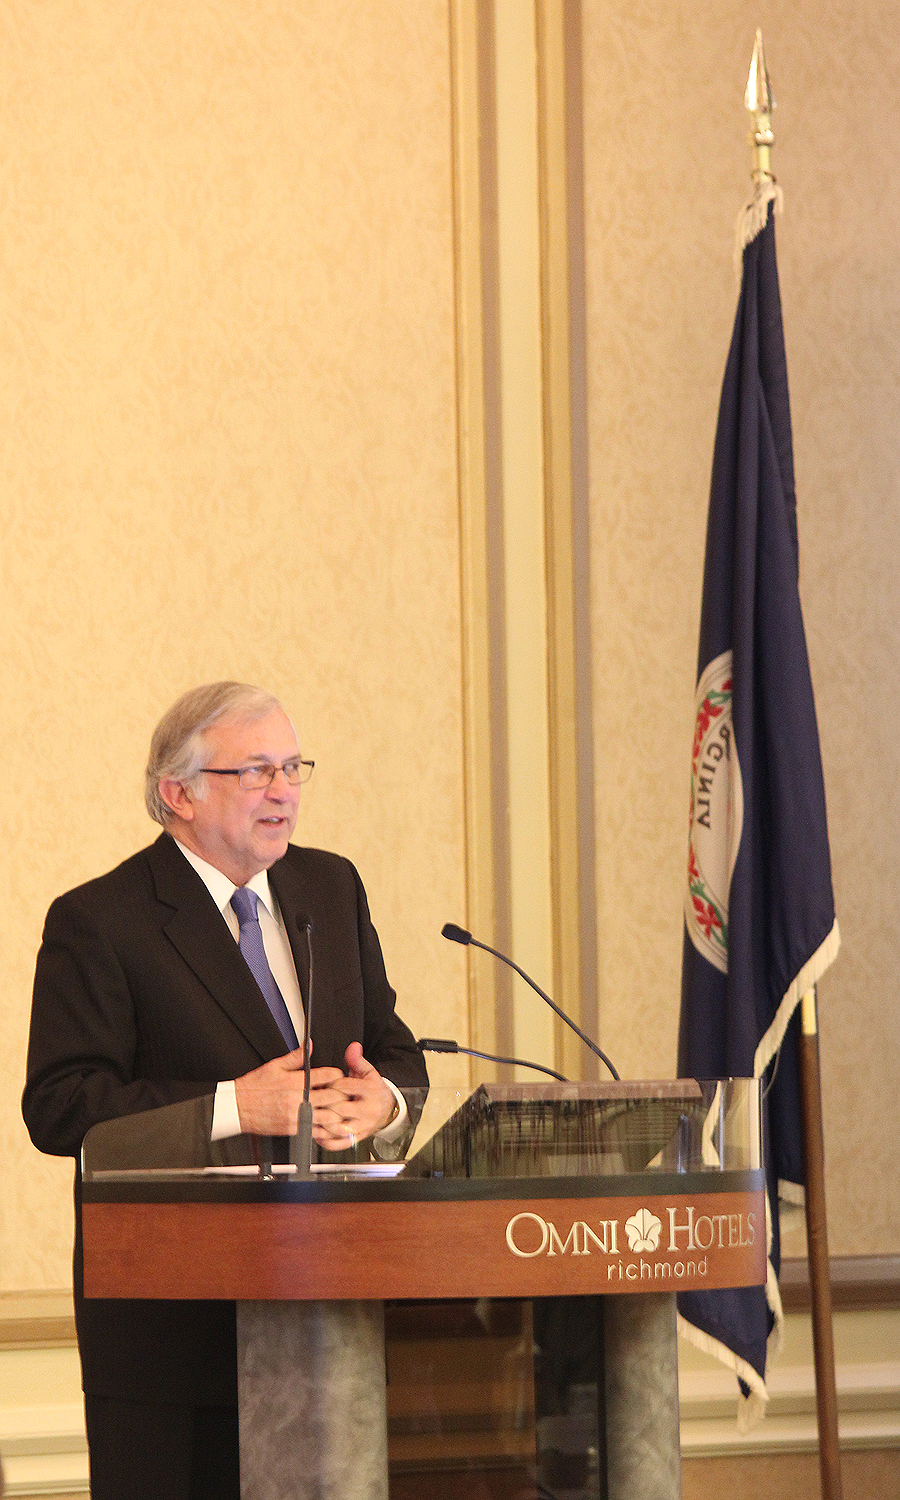 """We remain deeply committed to the future of our agriculture and forest industries around the commonwealth, the country, and the world,"" Virginia Tech President Charles W. Steger tells attendees at the recent Governor's Conference on Agricultural Trade."